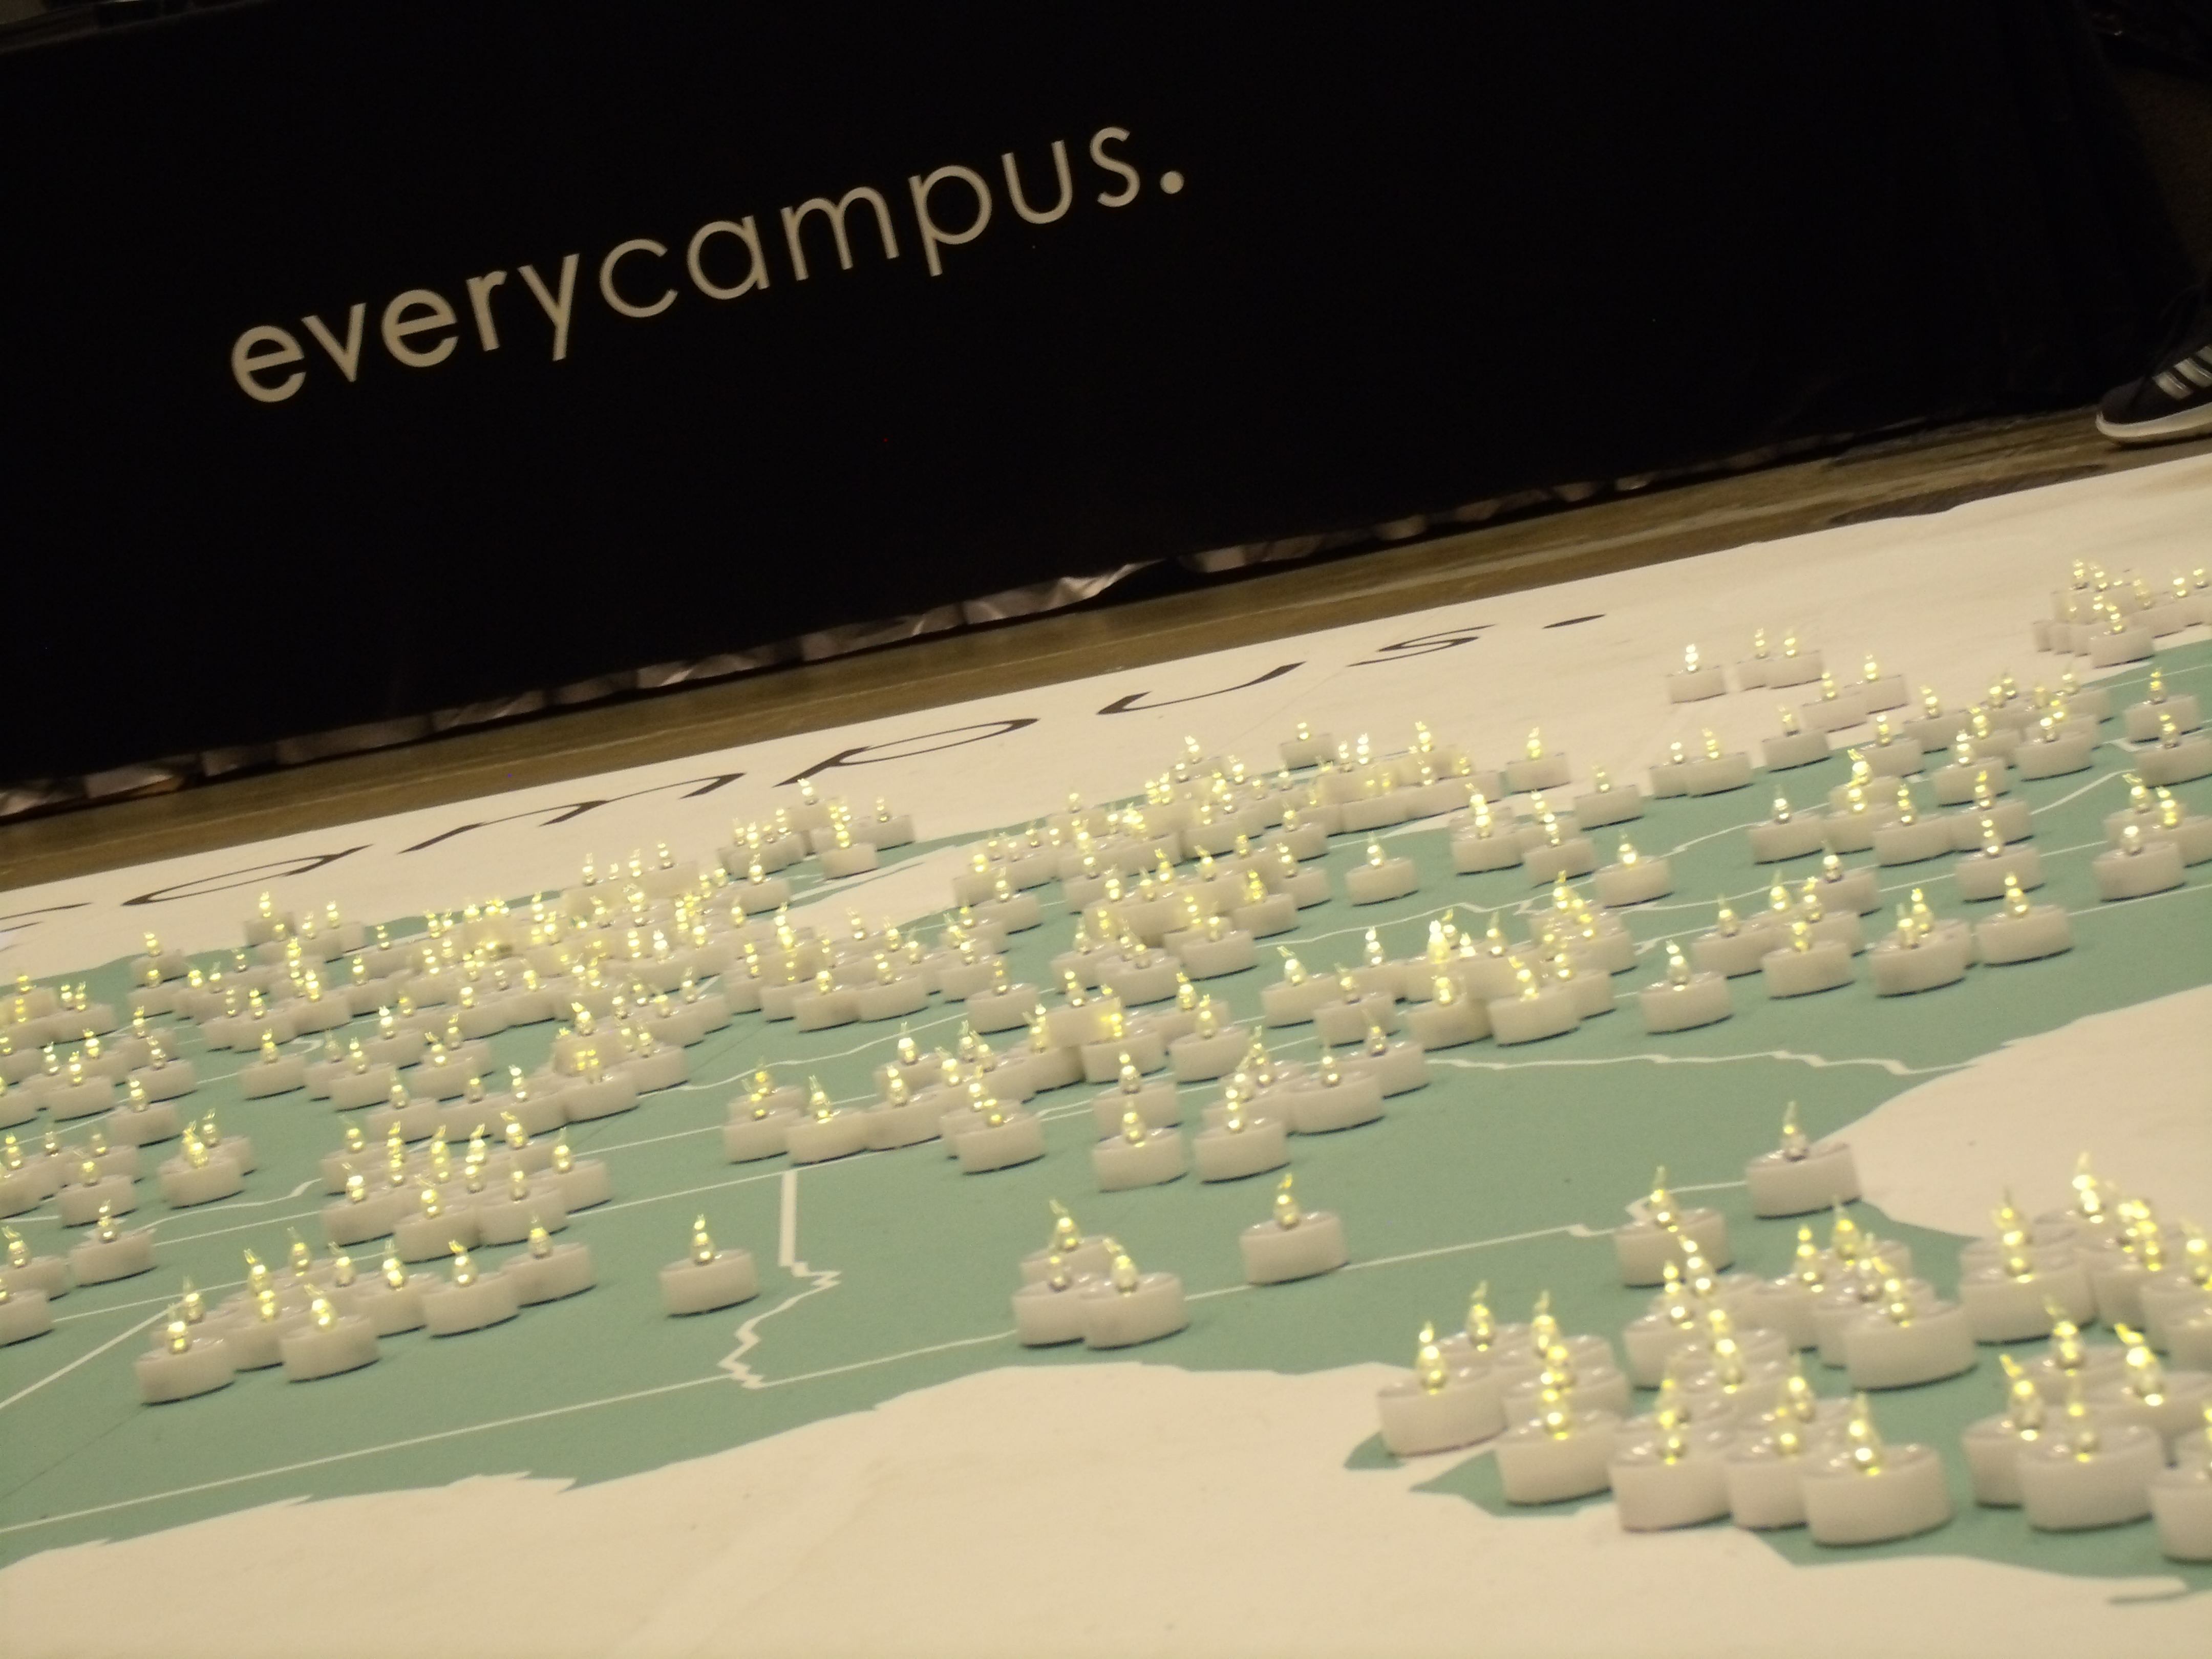 As Urbana 18 ends, EveryCampus begins